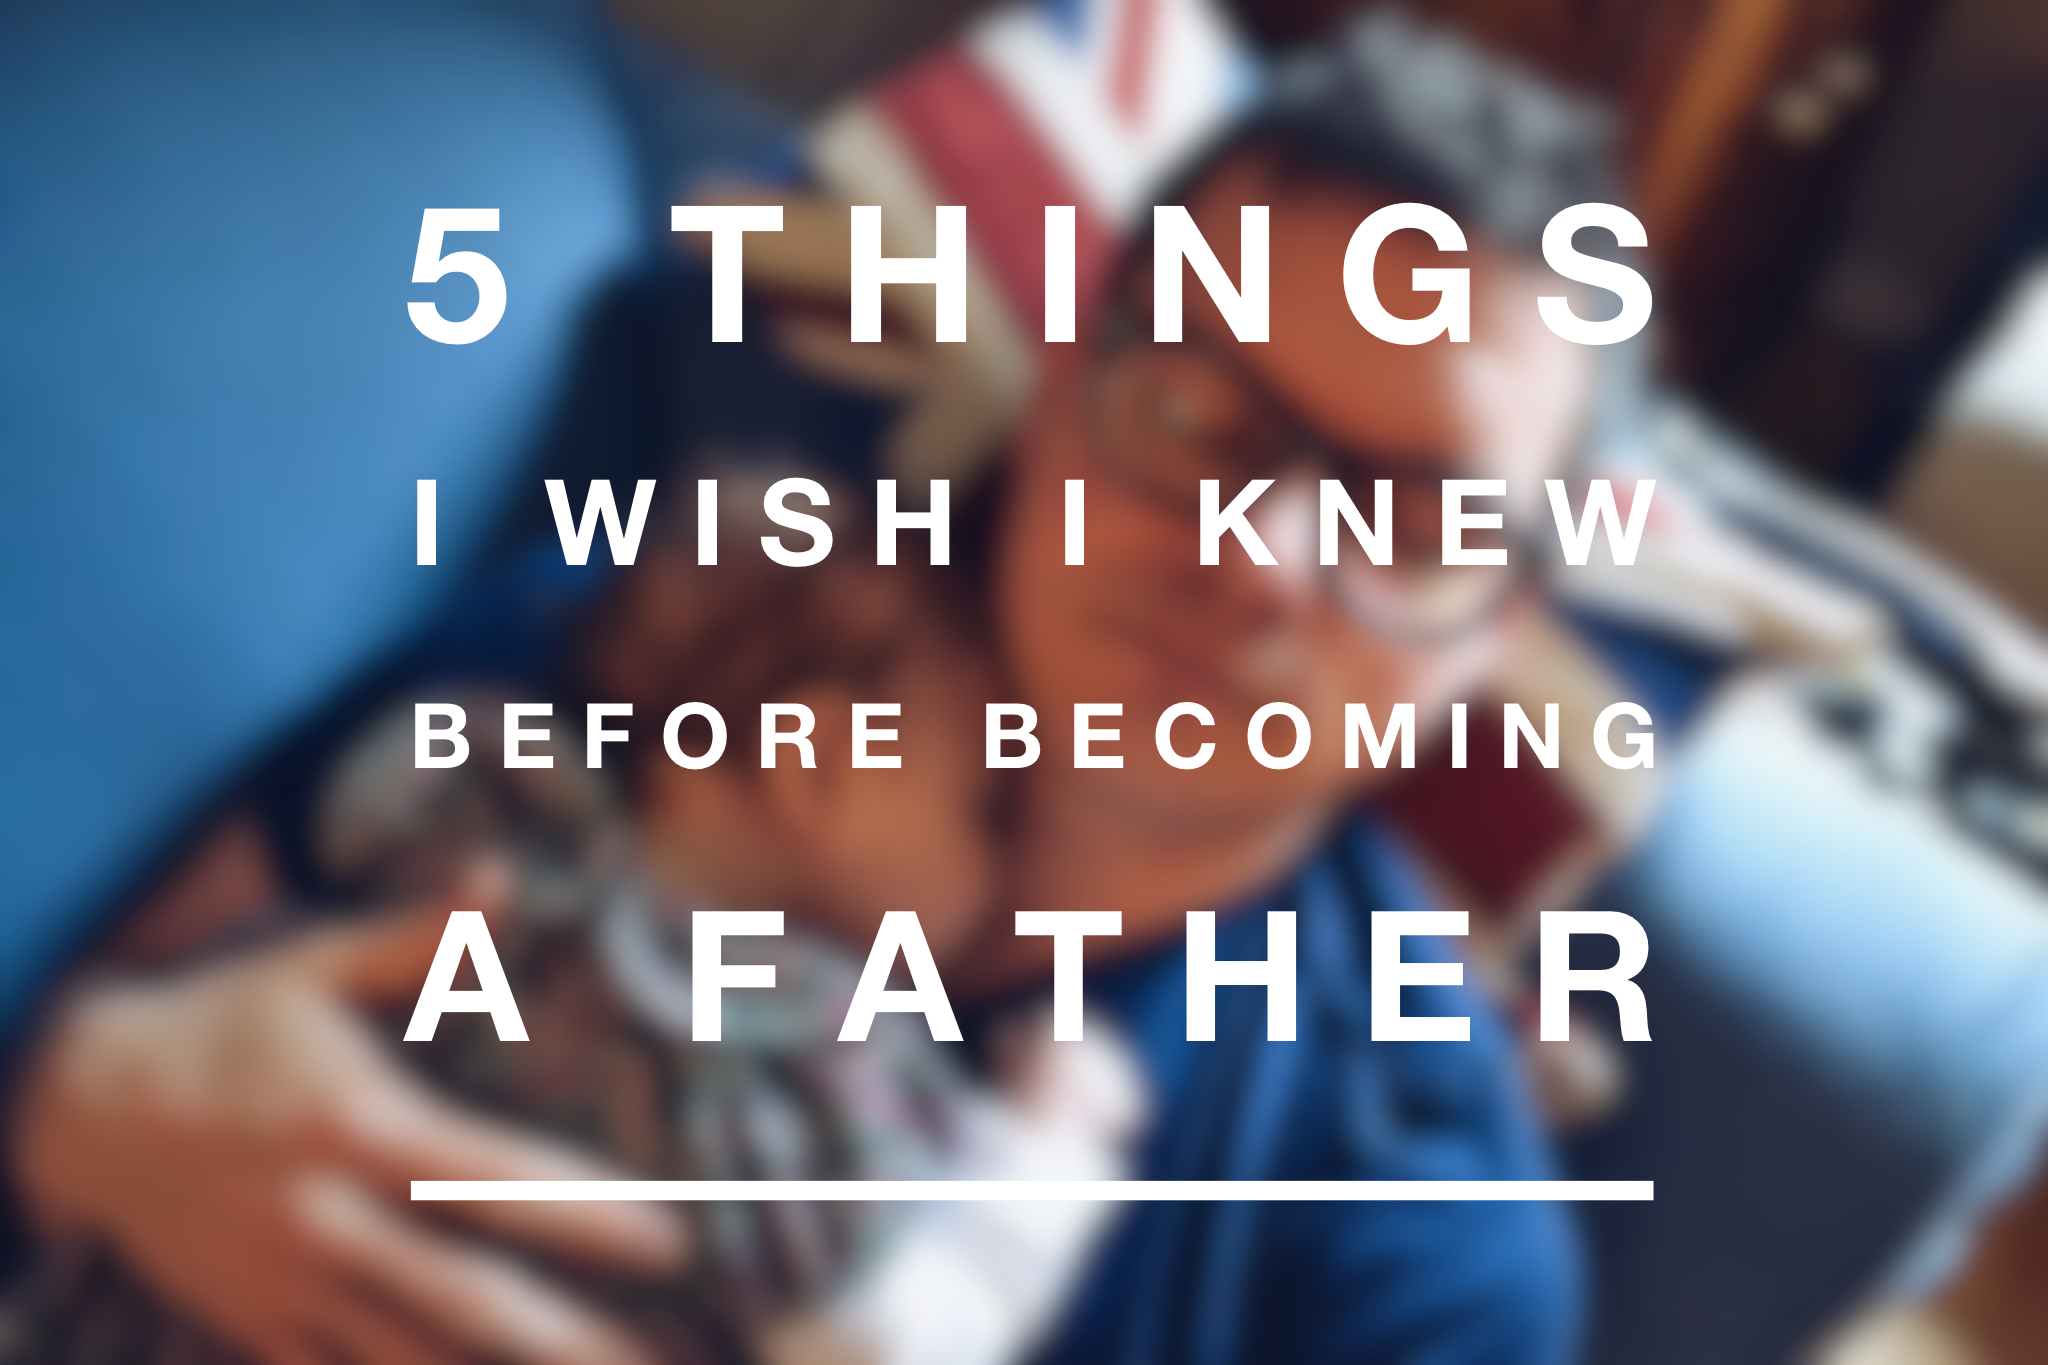 dad, social dad, becoming a father, lessons, advice, dad, socialdad, the socialdad, vancouver bloggers, dadbloggers, daddy blogger, contest giveaway